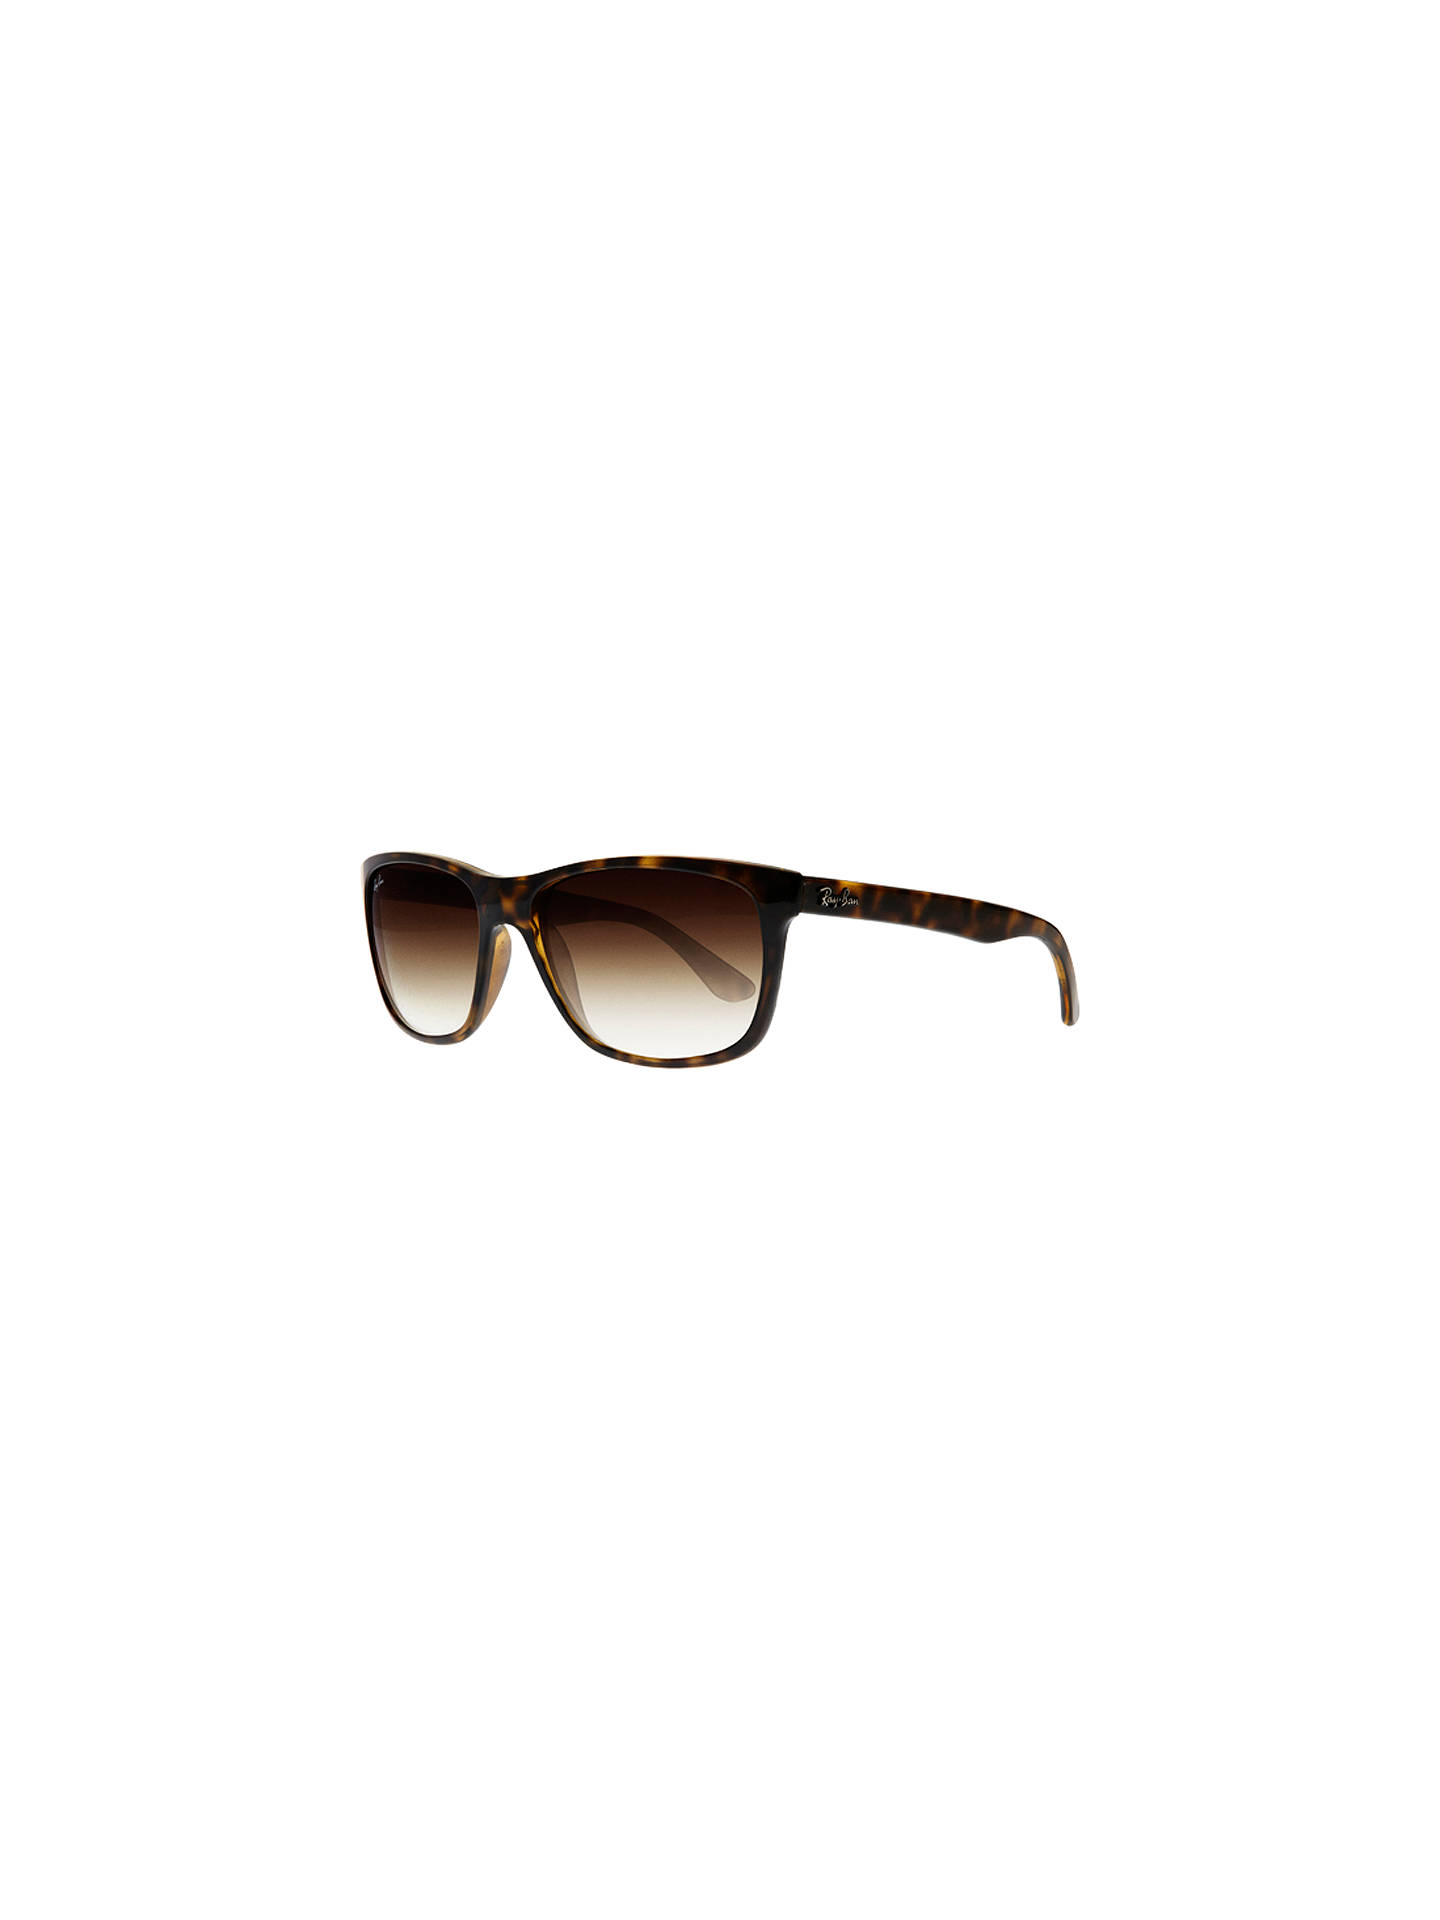 61bf7a4163c4 Ray-Ban RB4181 Highstreet Square Sunglasses at John Lewis   Partners